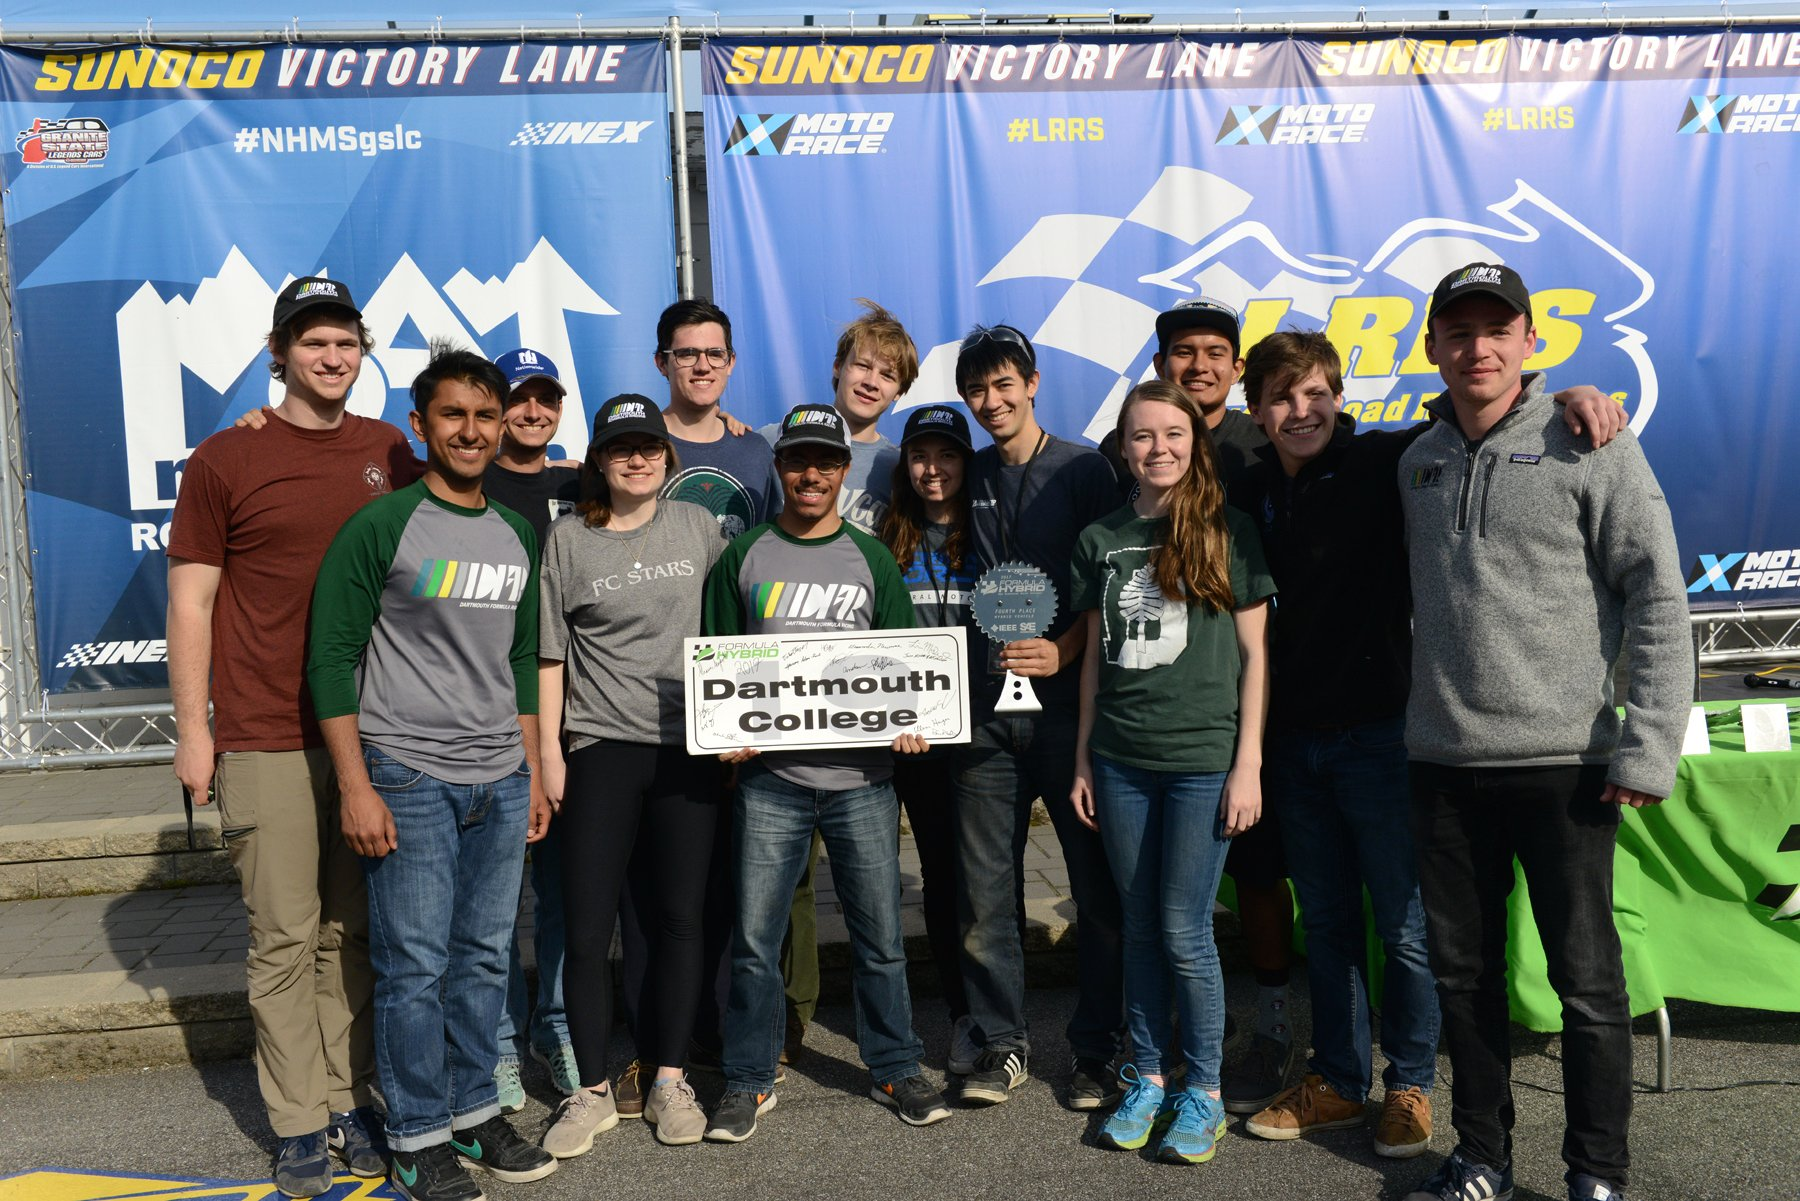 .@Dartmouth Formula Racing takes 4th place in hybrid category! #formulahybrid17 https://t.co/7JAttiZJwG